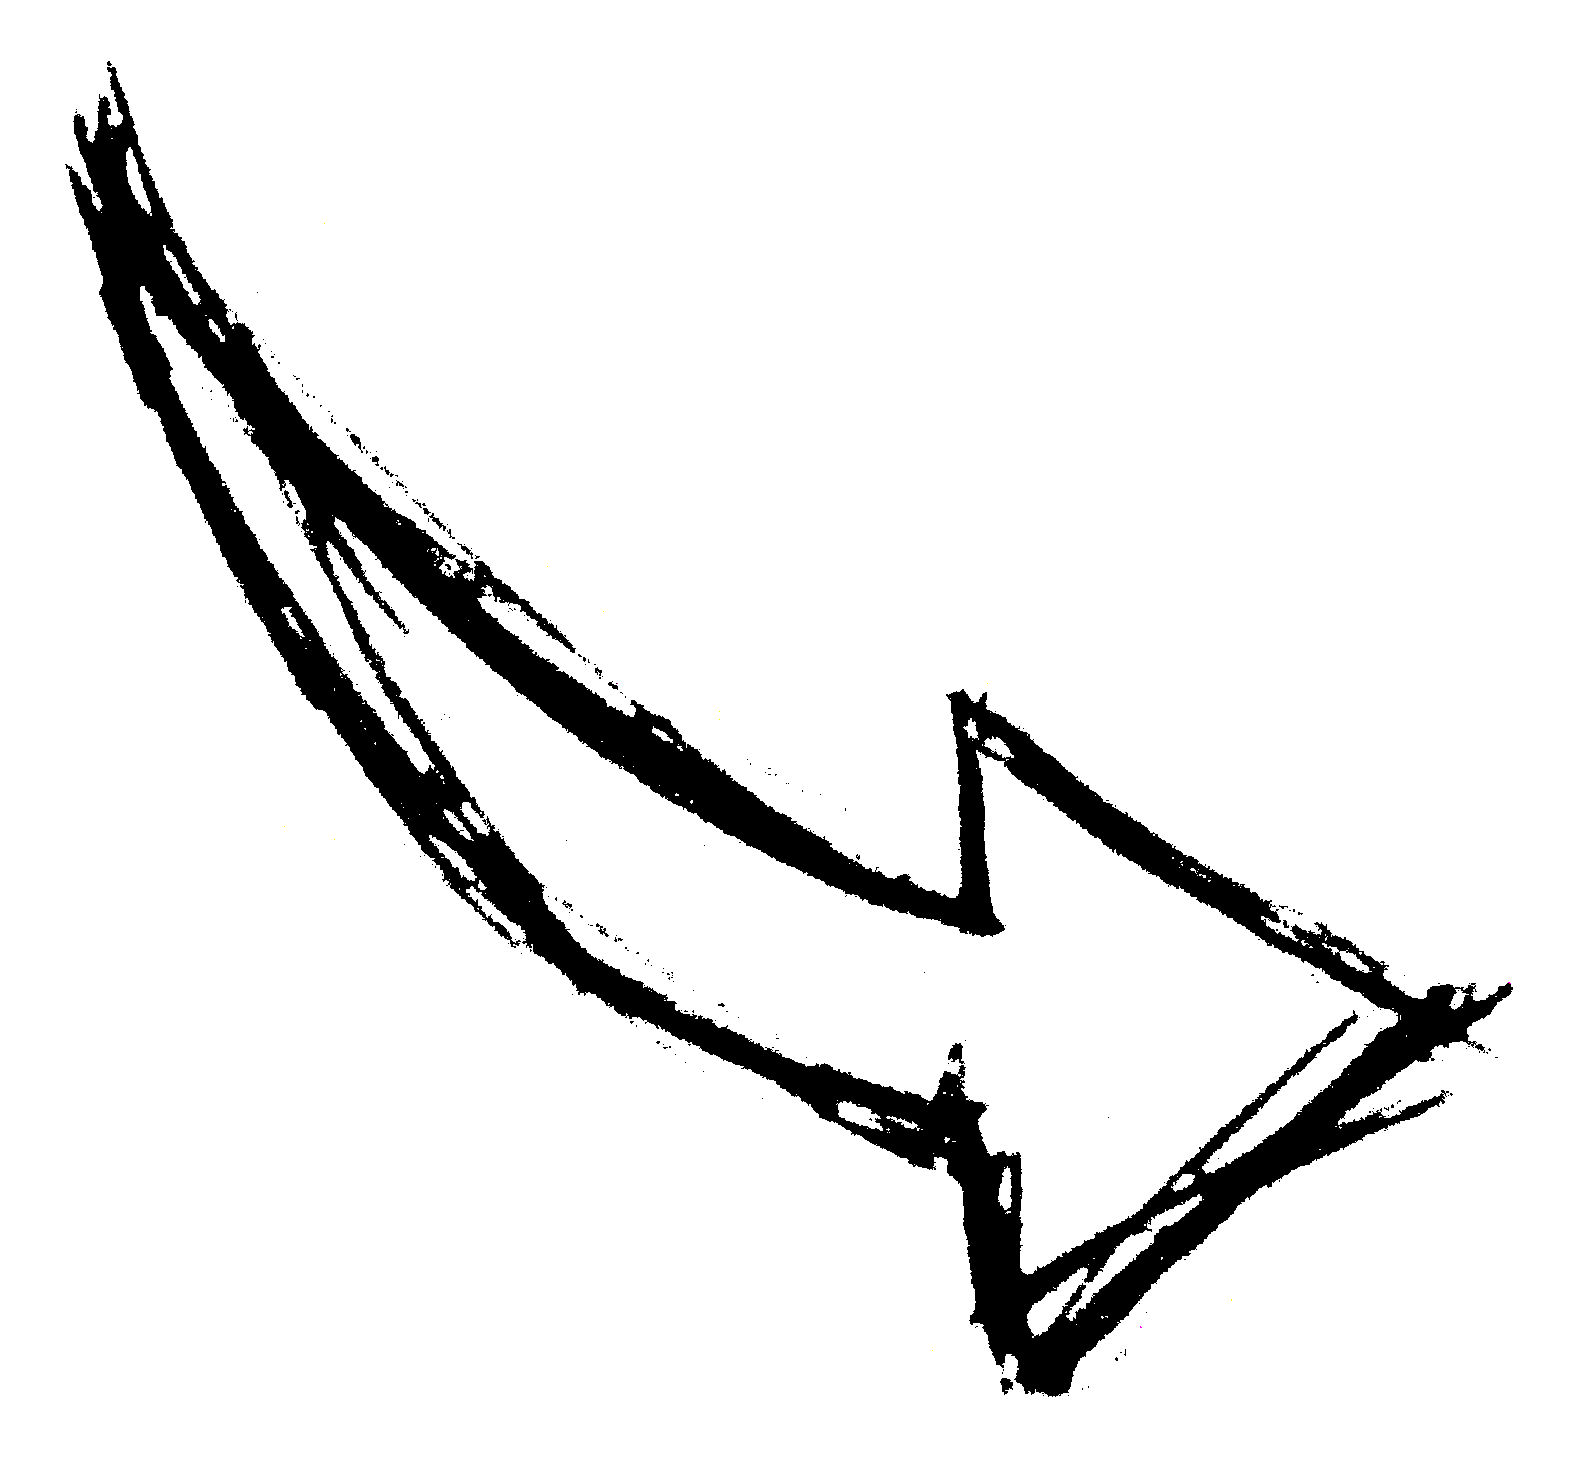 Drawn arrow easy Free Image com Transparent (hand